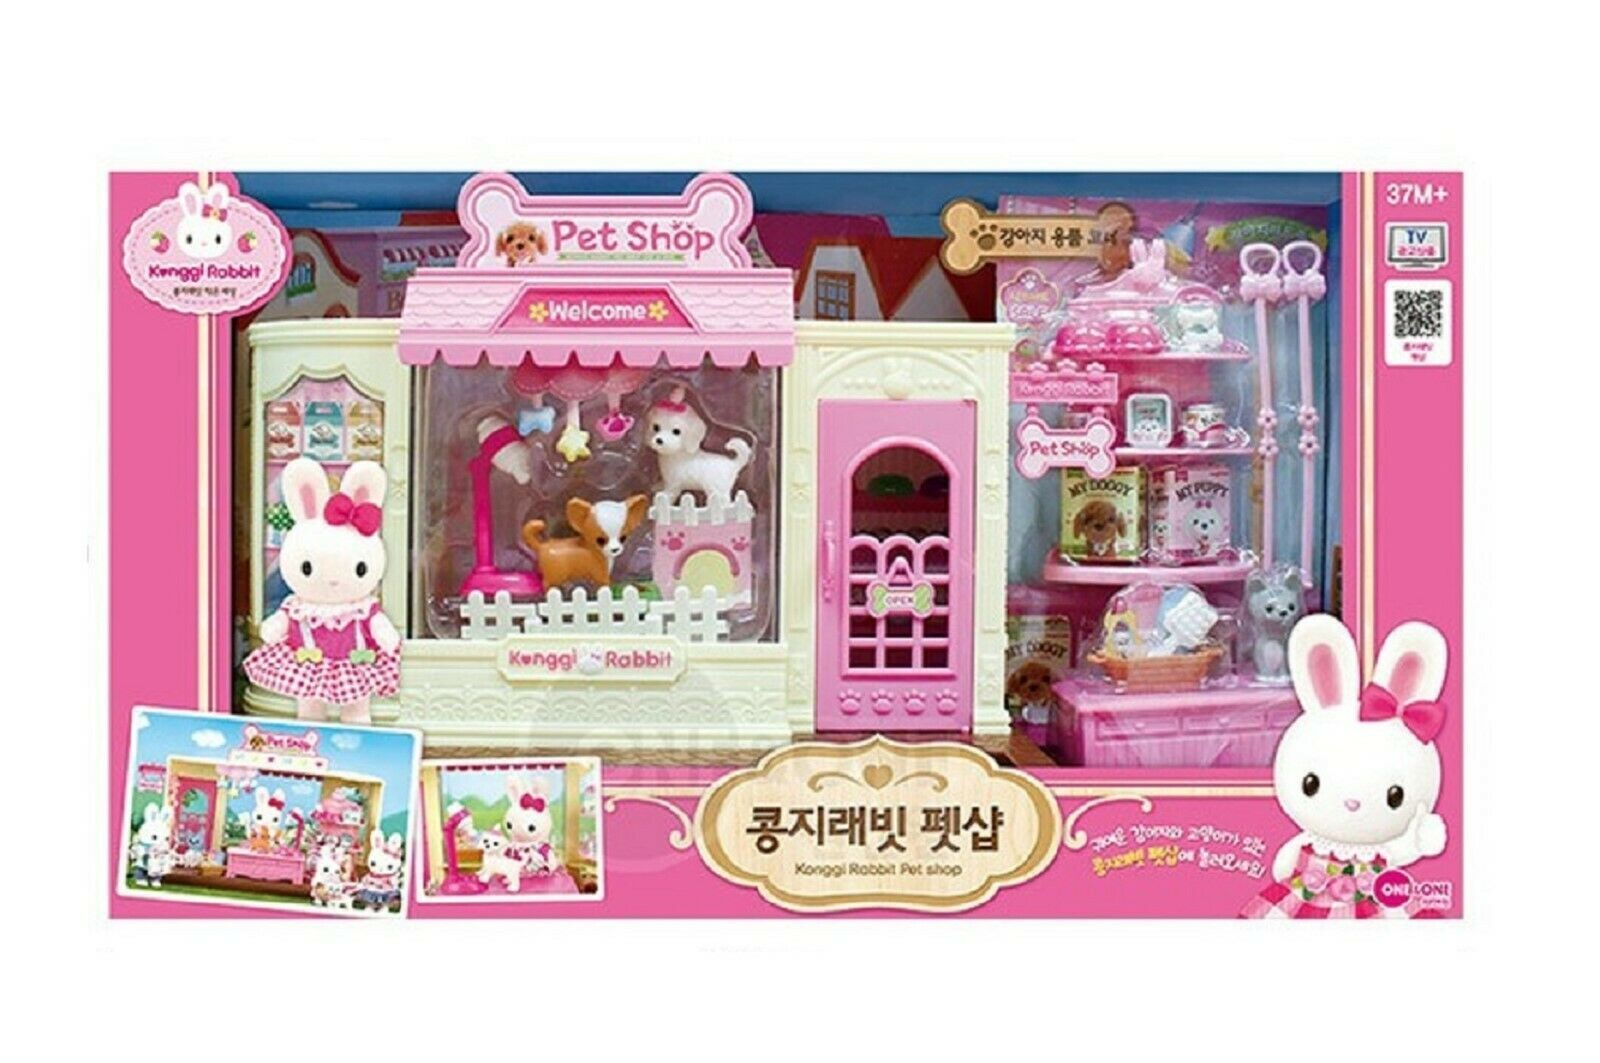 Konggi Rabbit Pet Shop Supply Store Dog Cat Caring Doll Roleplay Toy Dollhouse